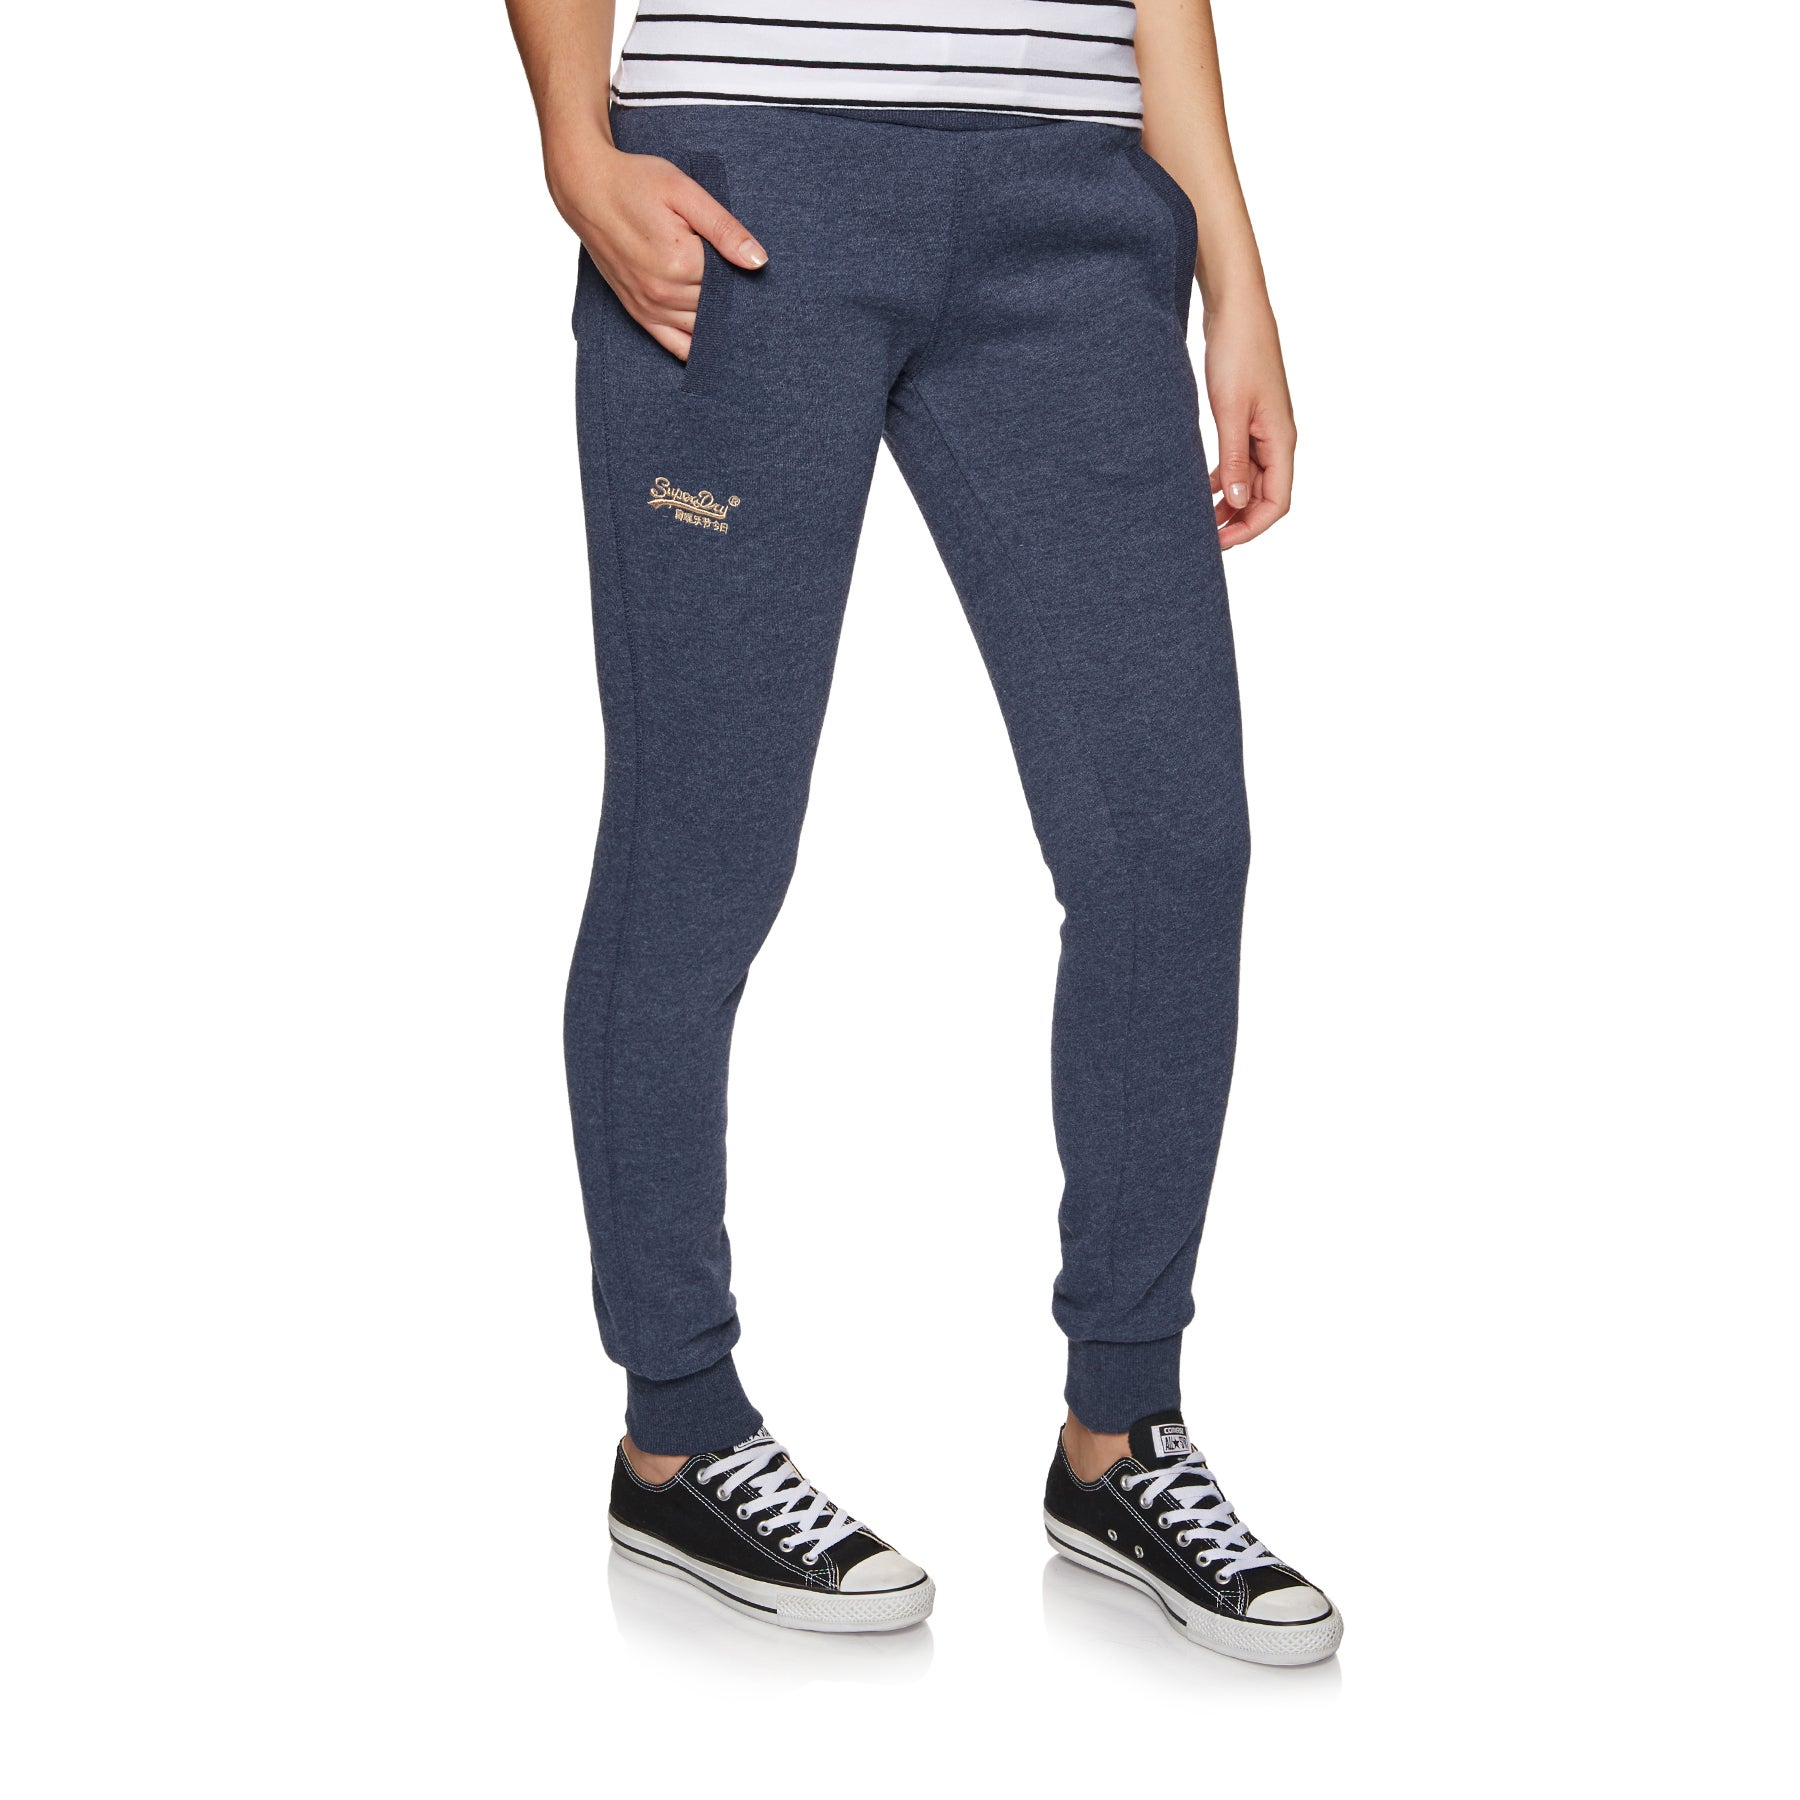 Calças de Jogging Senhora Superdry Orange Label Elite - Princedom Navy Marl